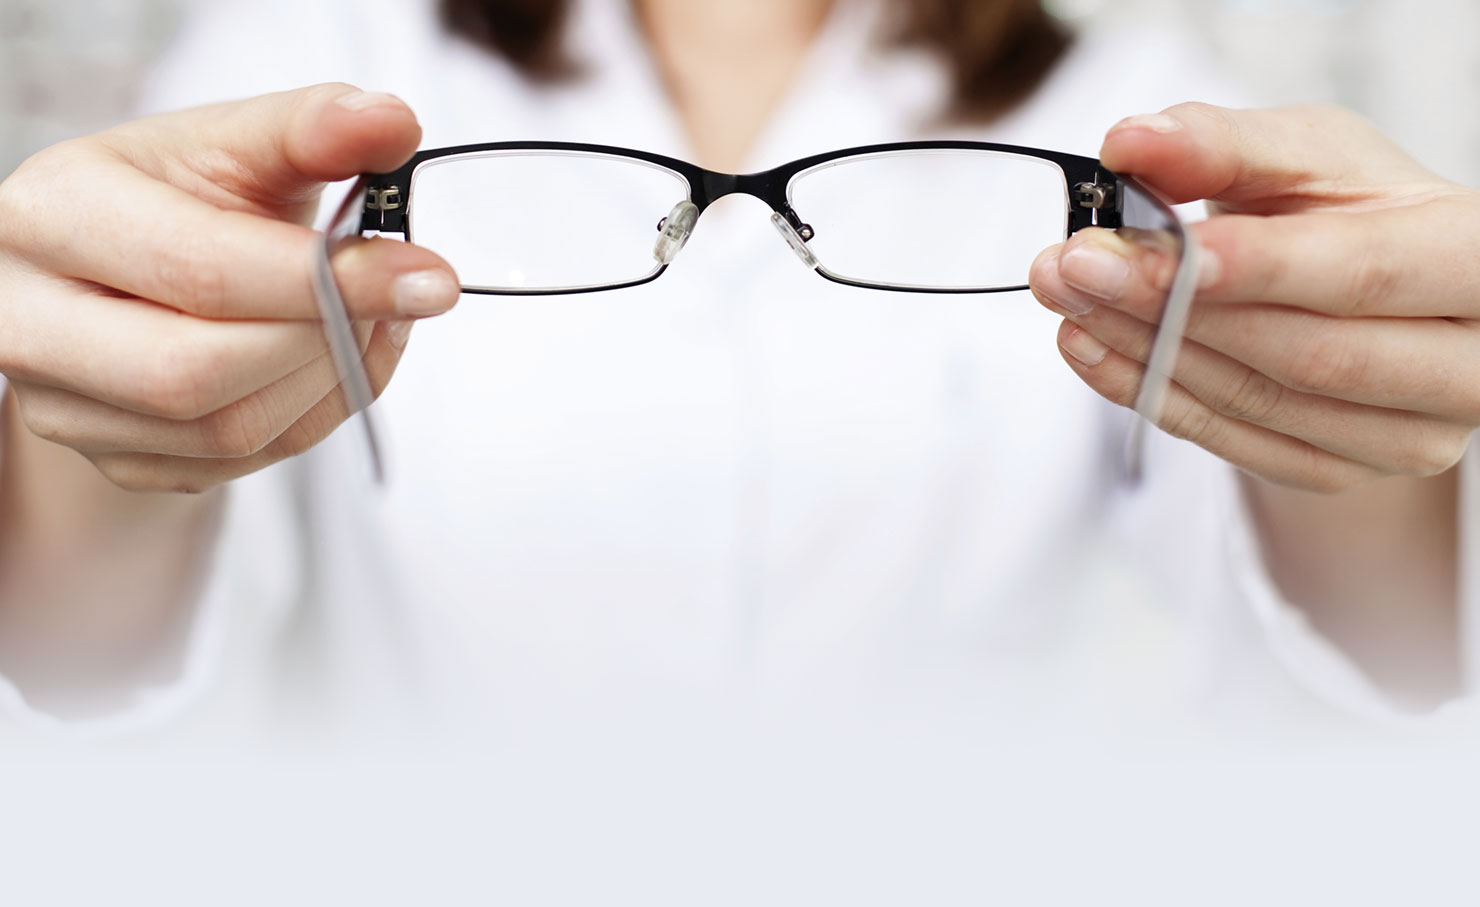 Optician Certification Training Ed2go Sanford Community Adult